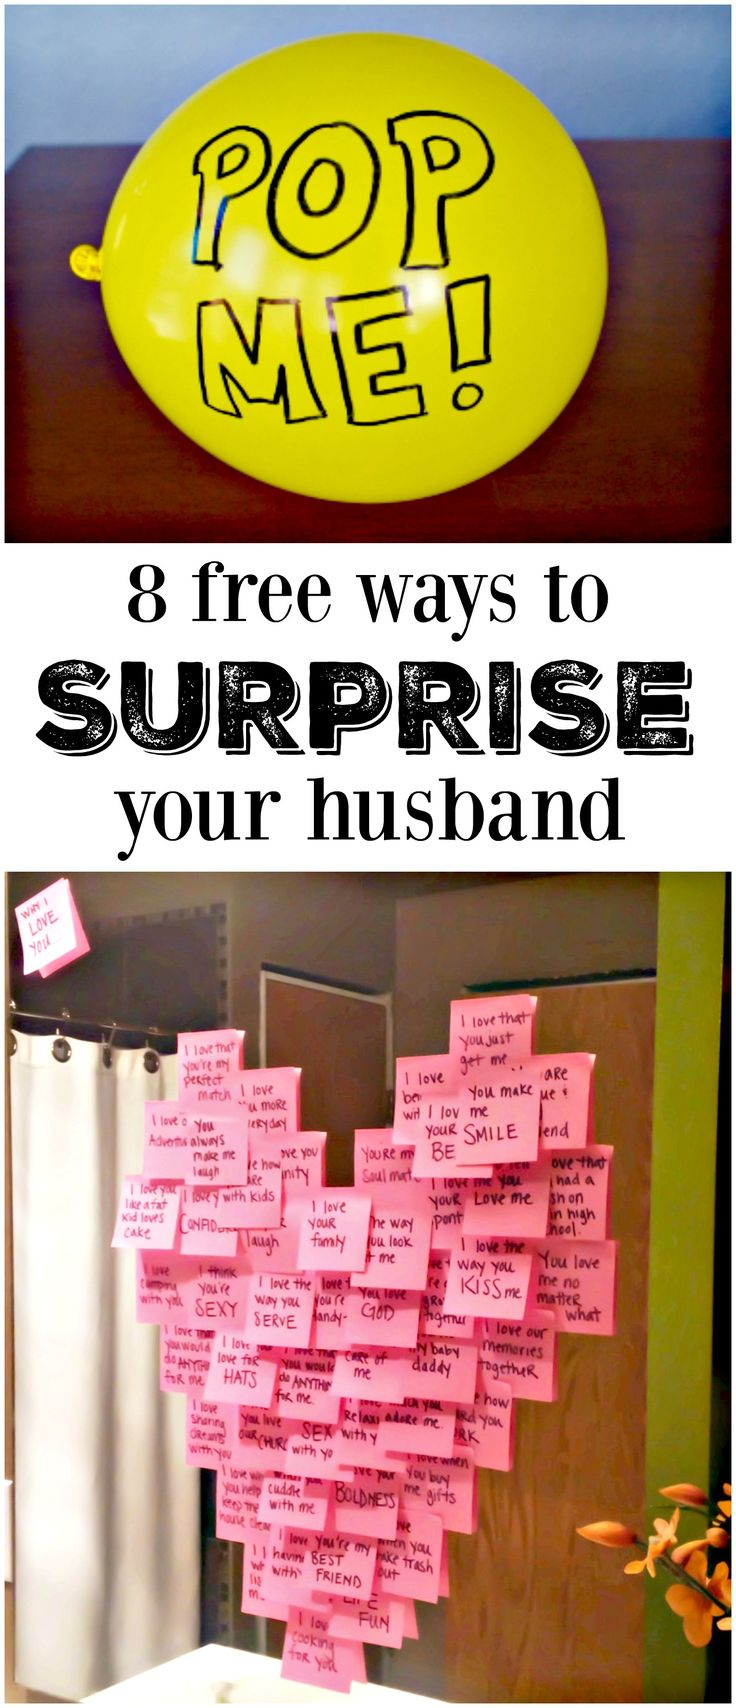 Best 25 husband gifts ideas on pinterest birthday ideas for 8 meaningful ways to make his day birthday surprise boyfriendboyfriend birthday ideas creativepregnant surprise husbandsuprise negle